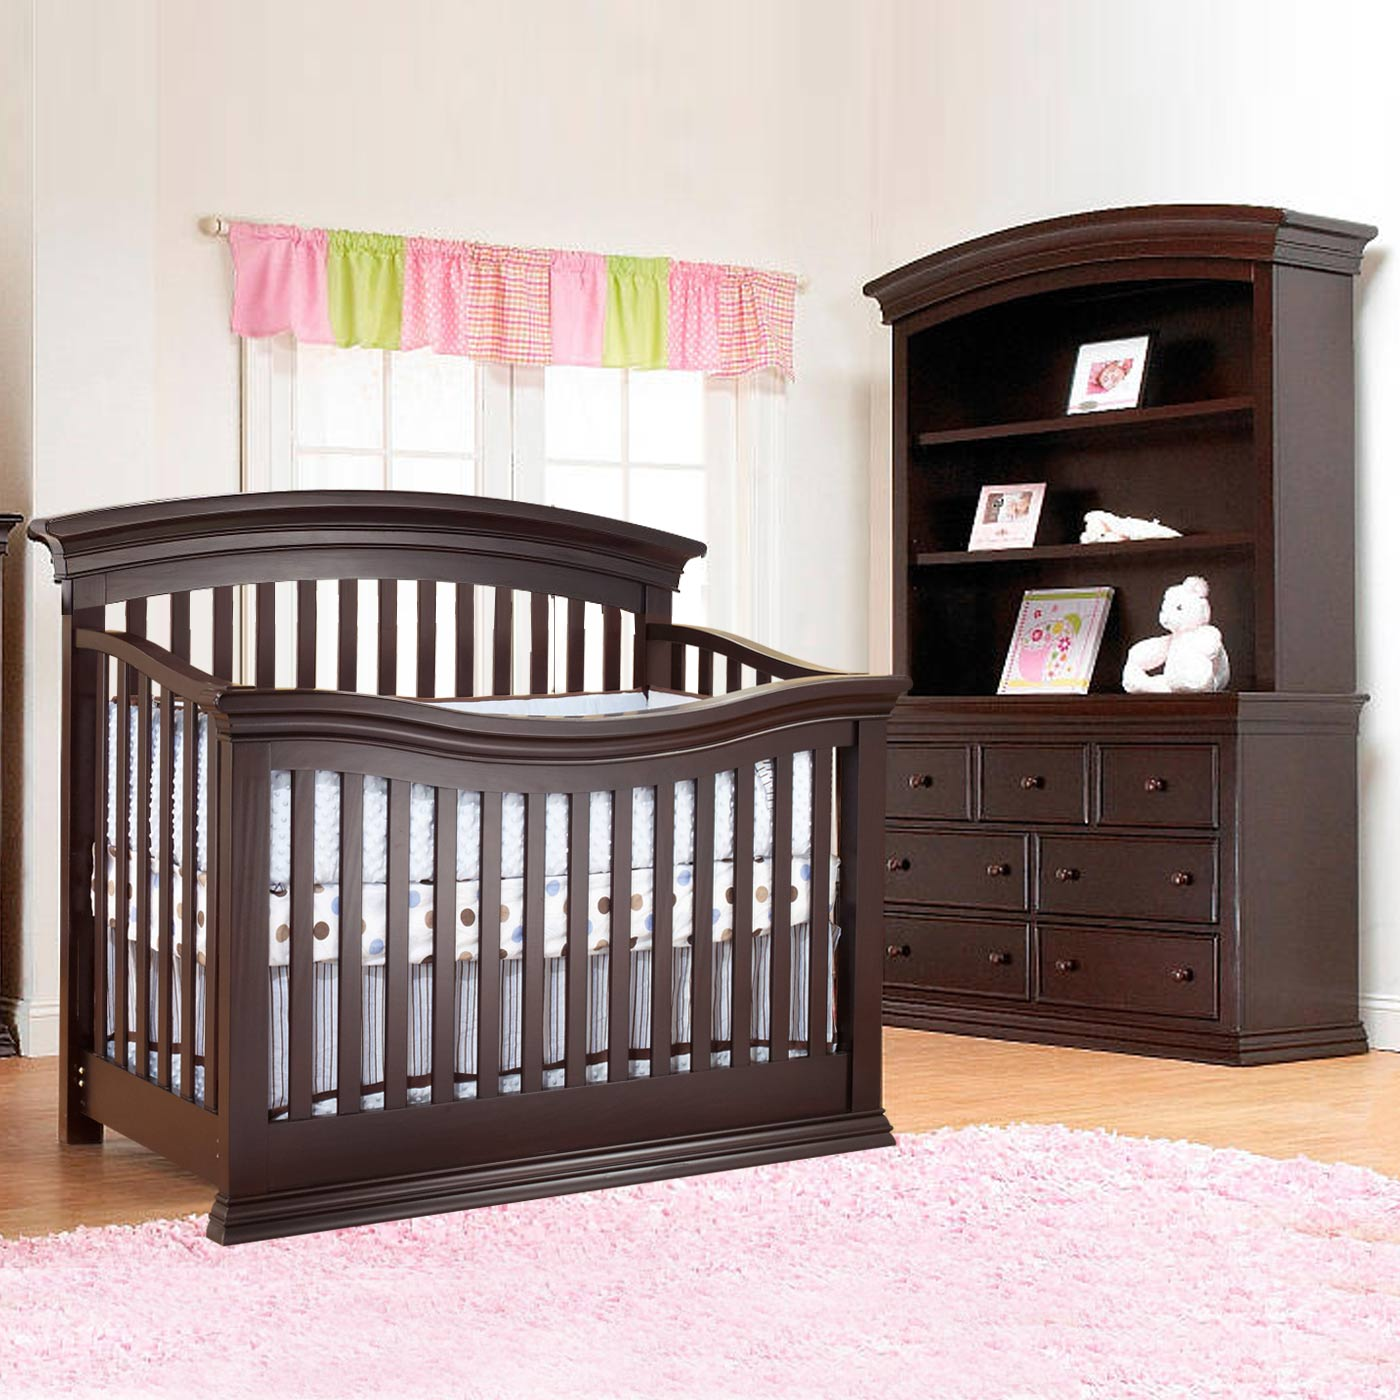 Sorelle Verona 3 Piece Nursery Set 4 In 1 Convertible Crib Double Dresser And Hutch Espresso Free Shipping